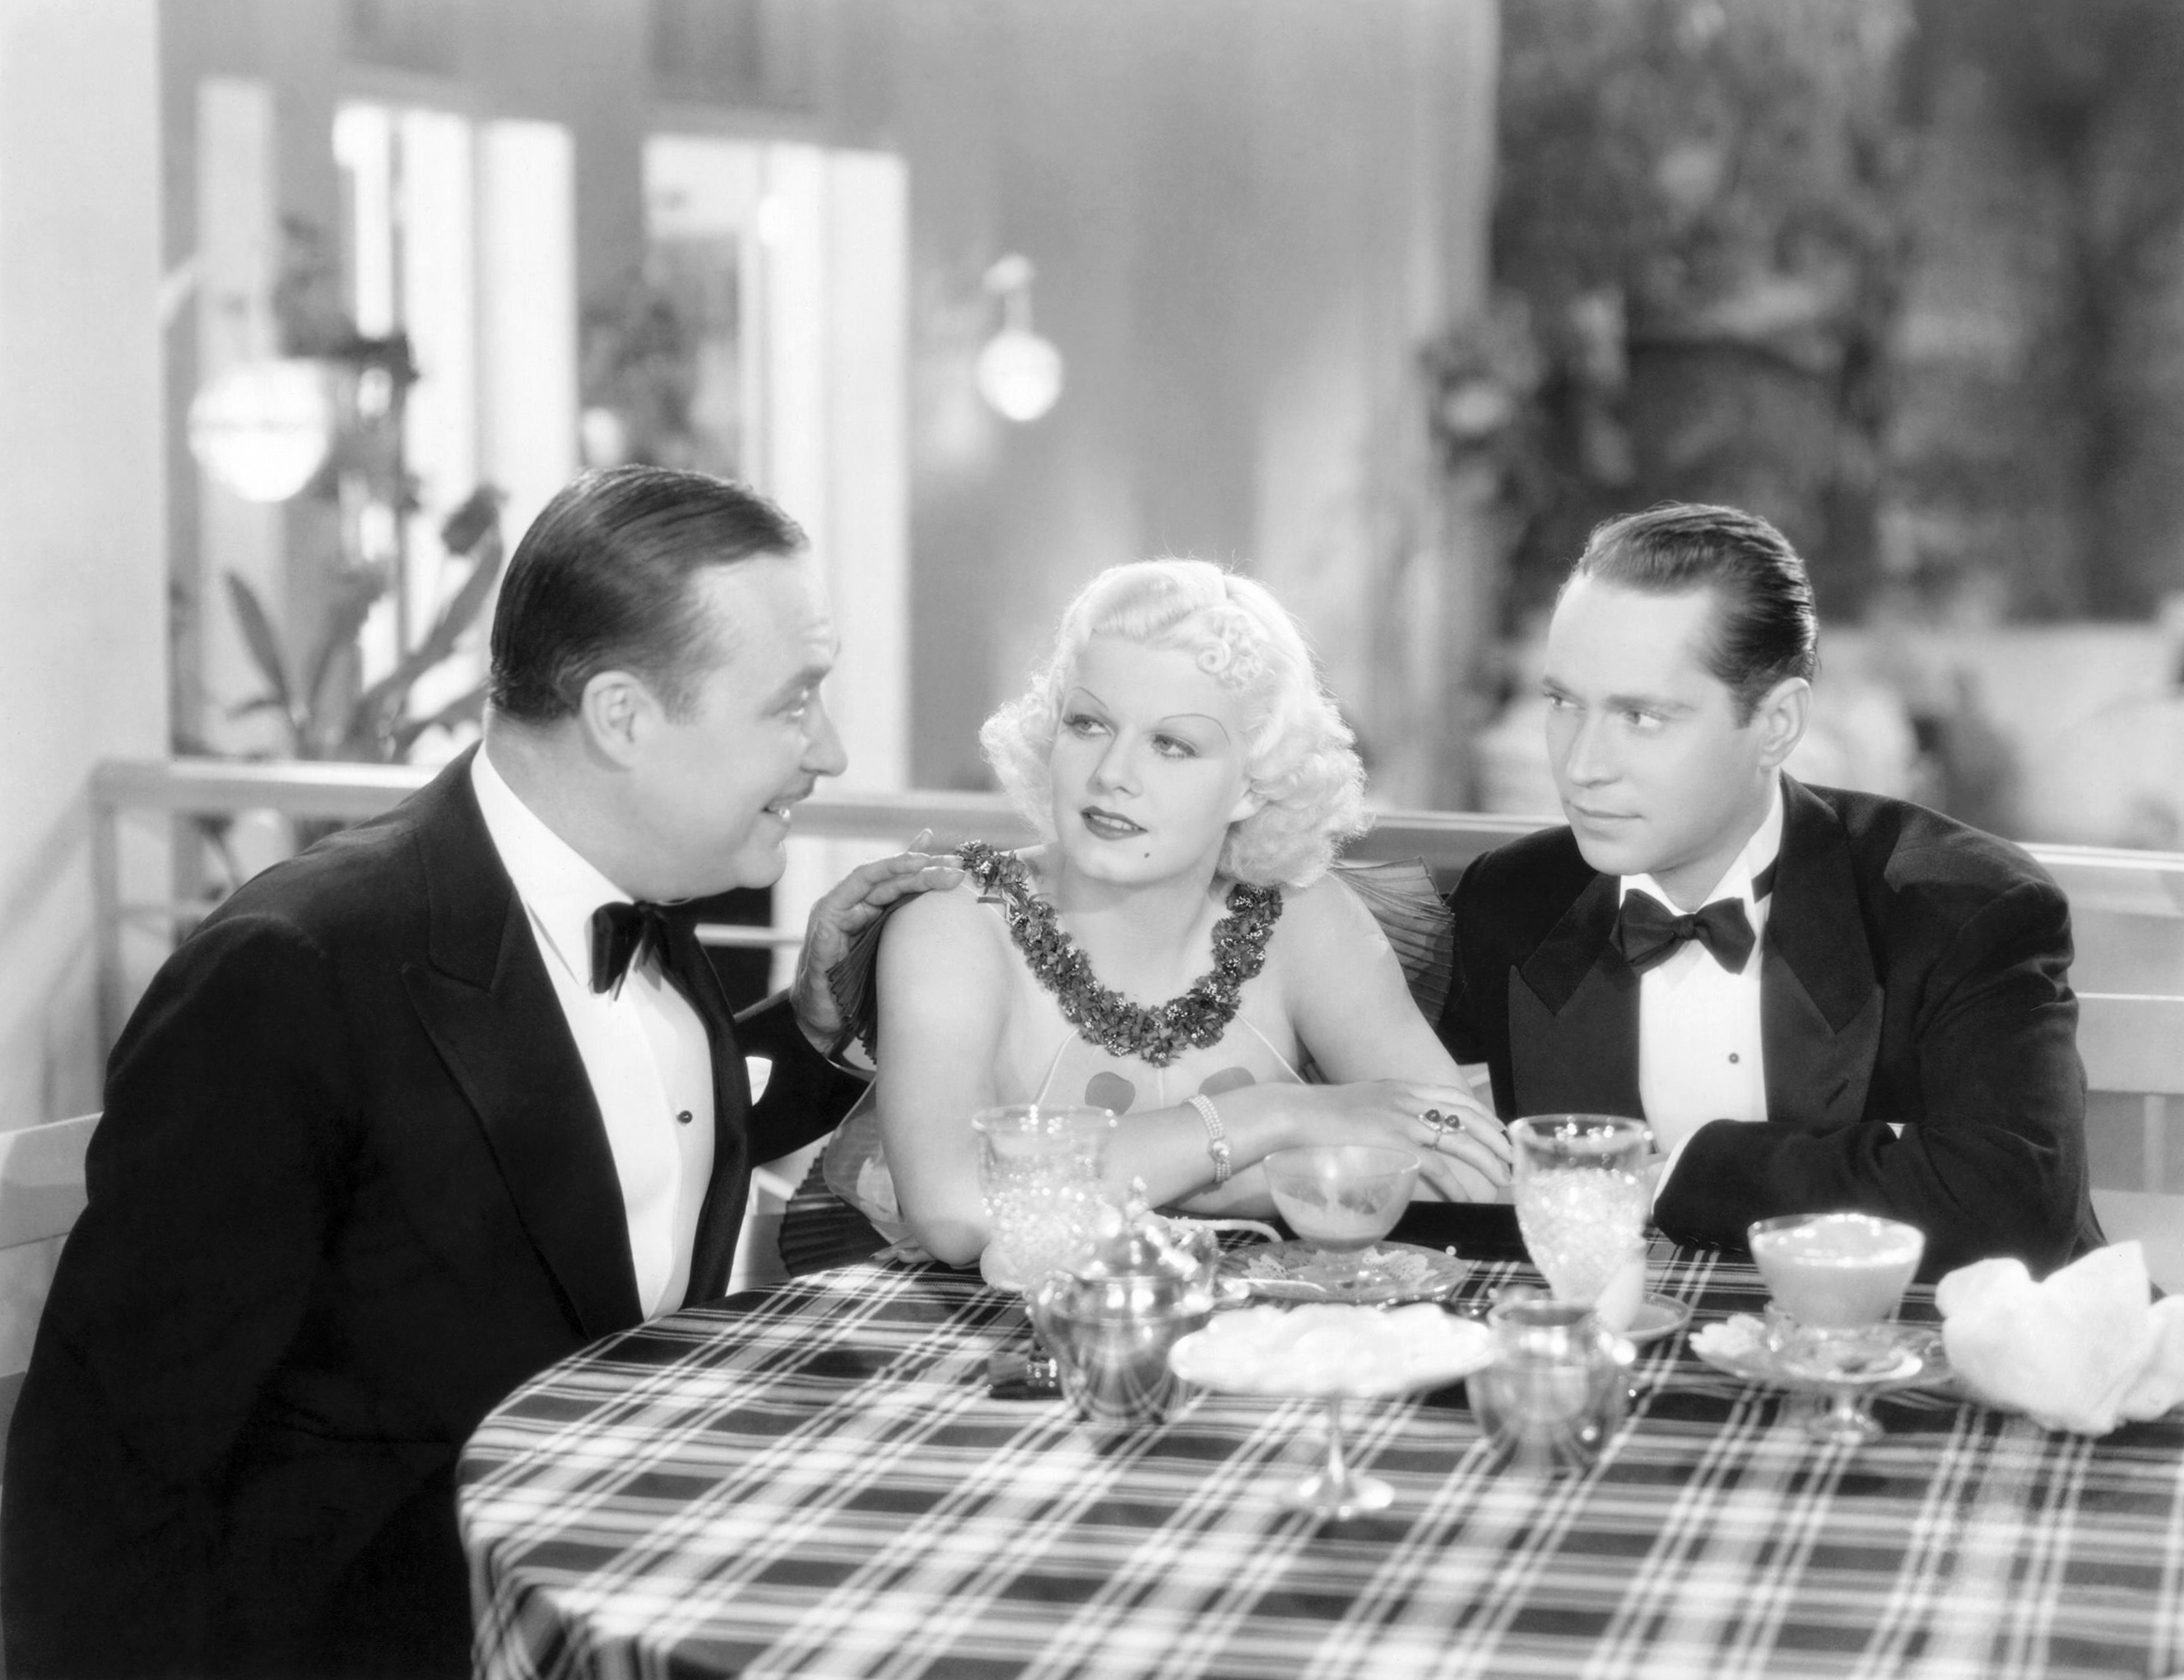 Jean Harlow in The Girl From Missouri with (L to R) Hale Hamilton, Jean Harlow, Franchot Tone